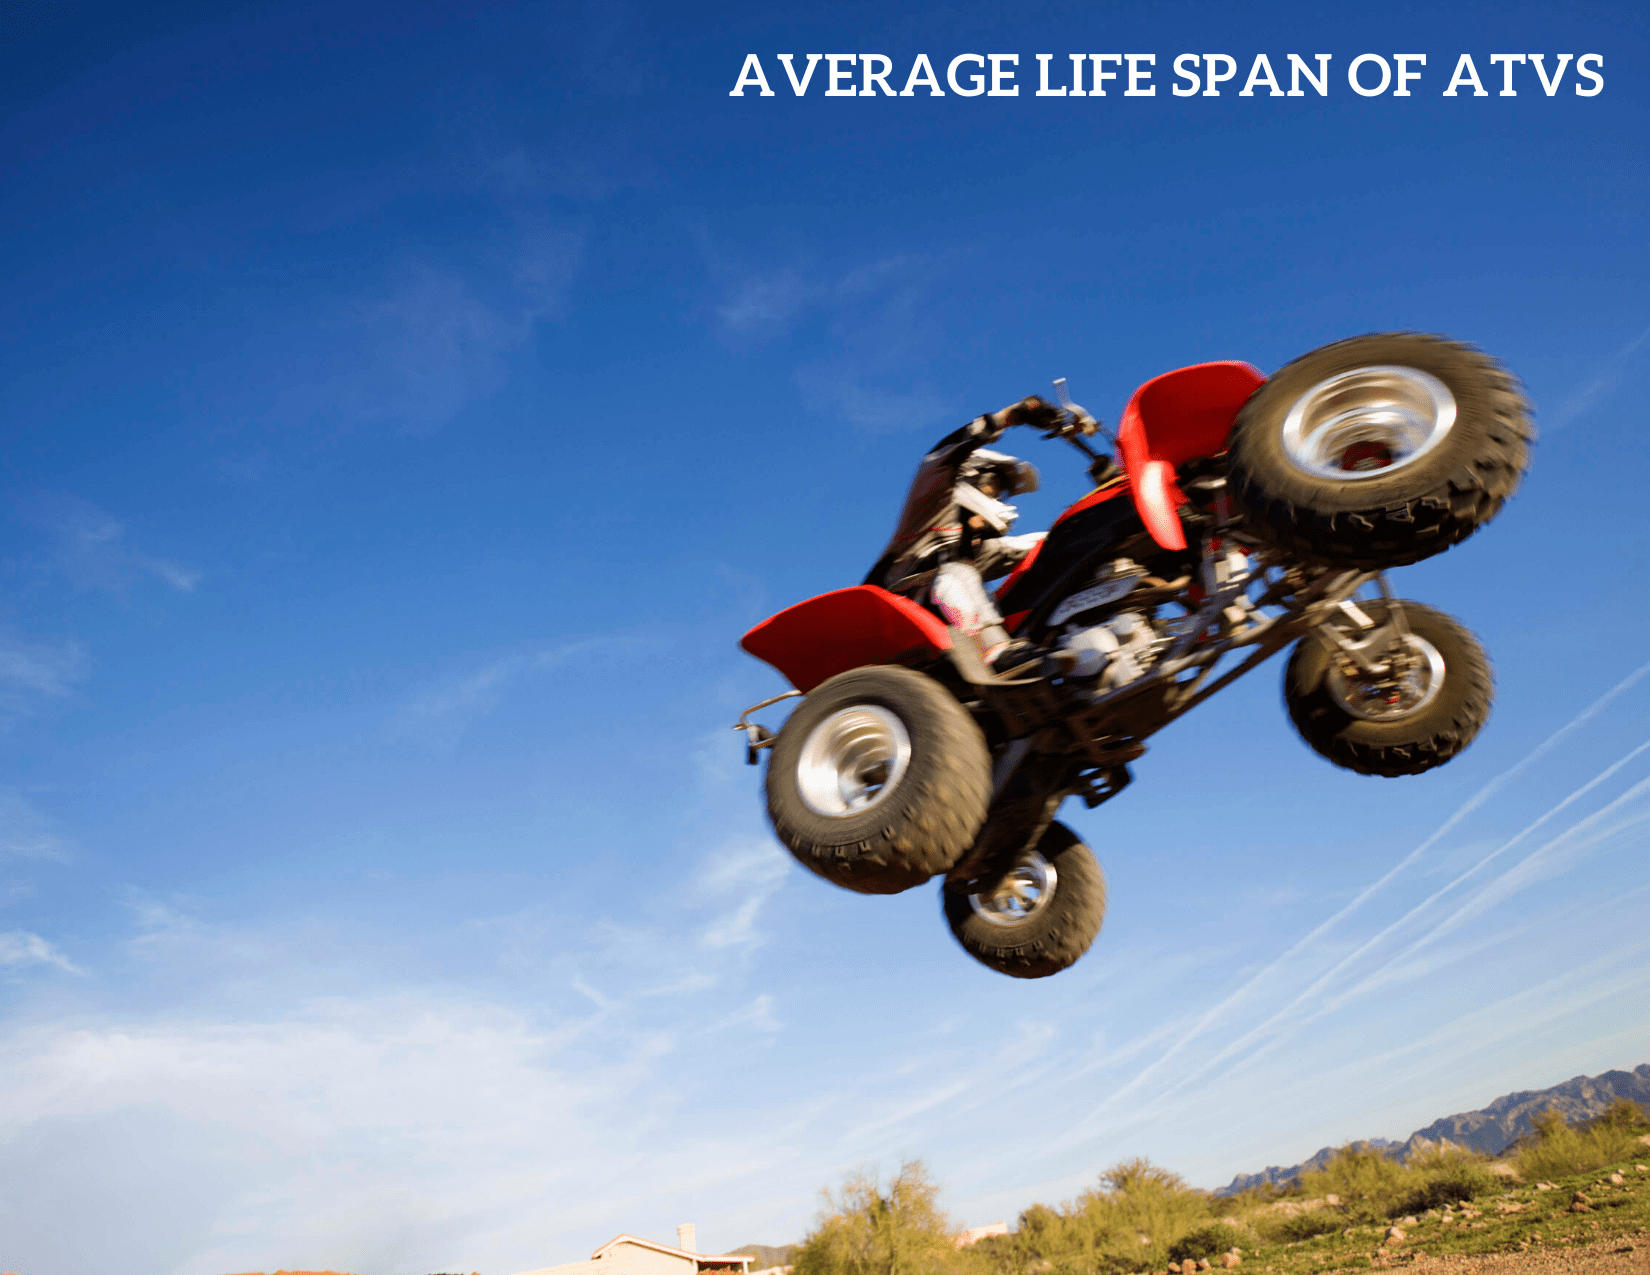 What is the average life span of ATV?